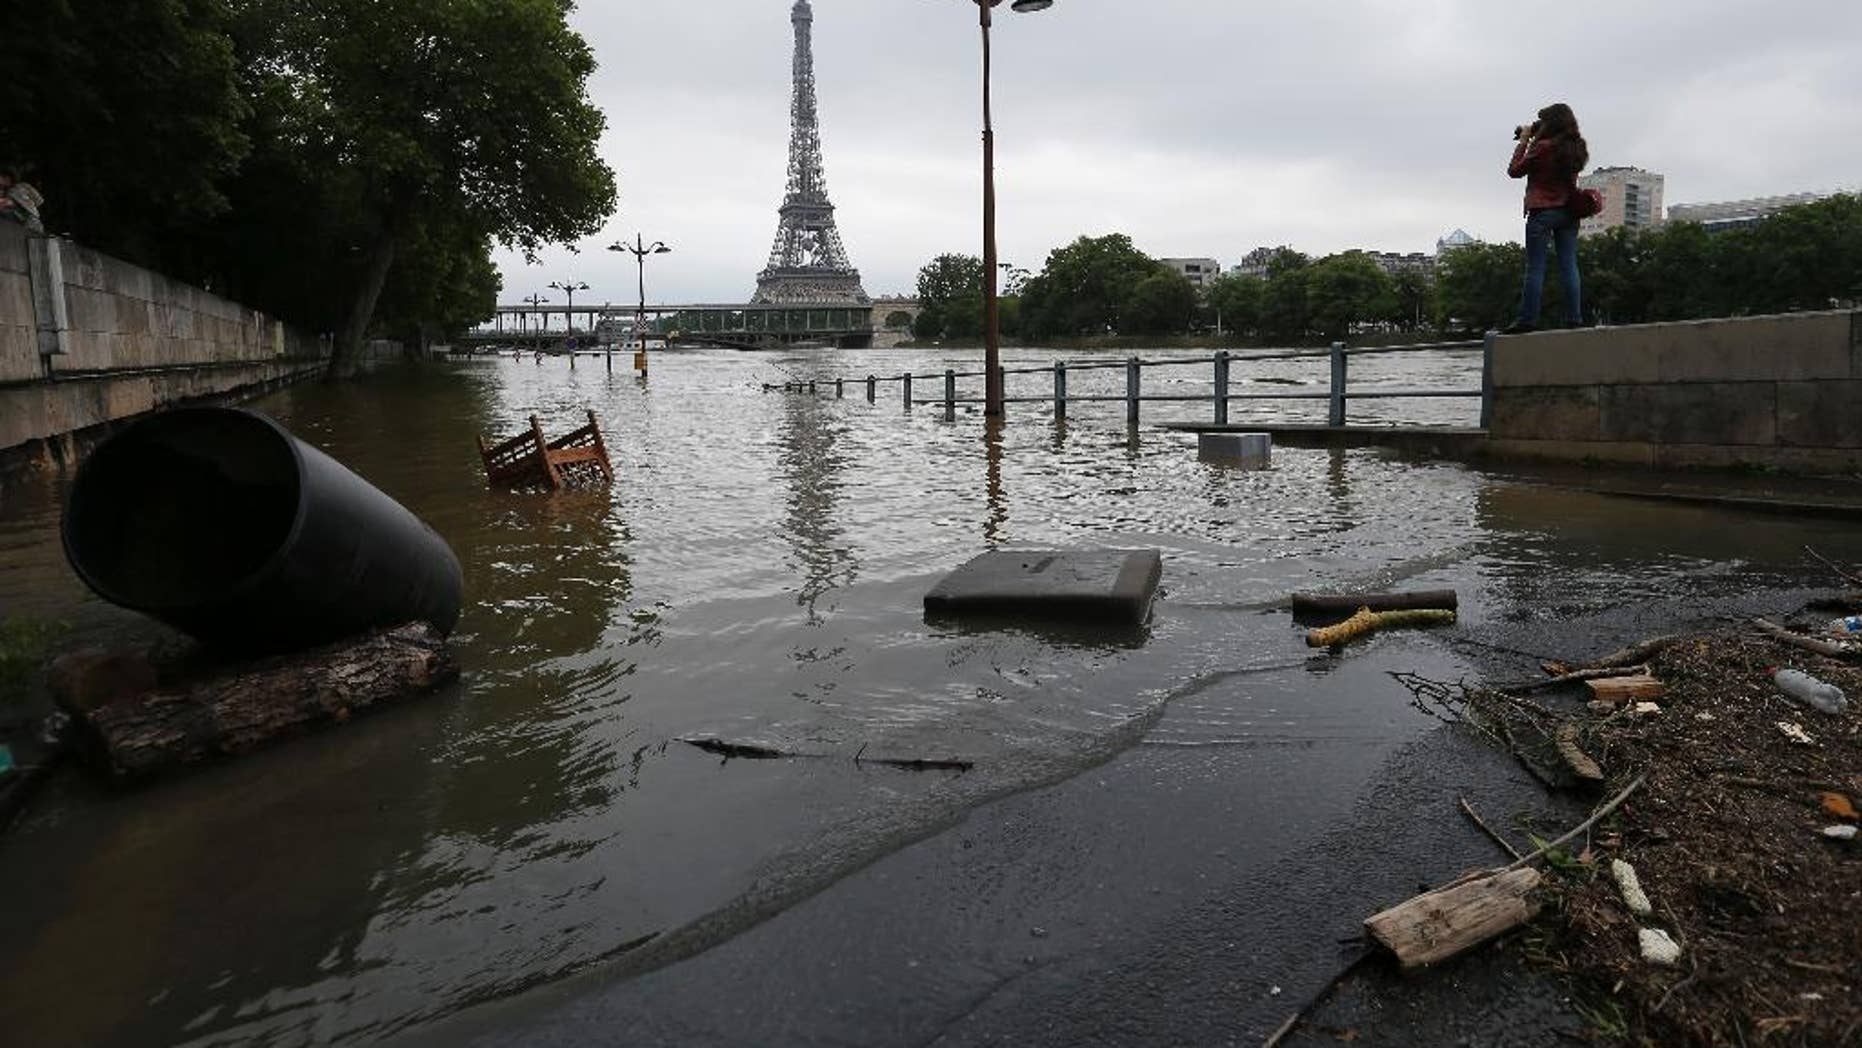 A woman takes photos of the flooded banks of the Seine river in Paris, France Saturday June 4, 2016. The level of the Seine started to drop after peaking earlier in the morning. Both the Louvre and Orsay museums were closed as officials said the Seine had been at its highest level in nearly 35 years. (AP Photo/Francois Mori)